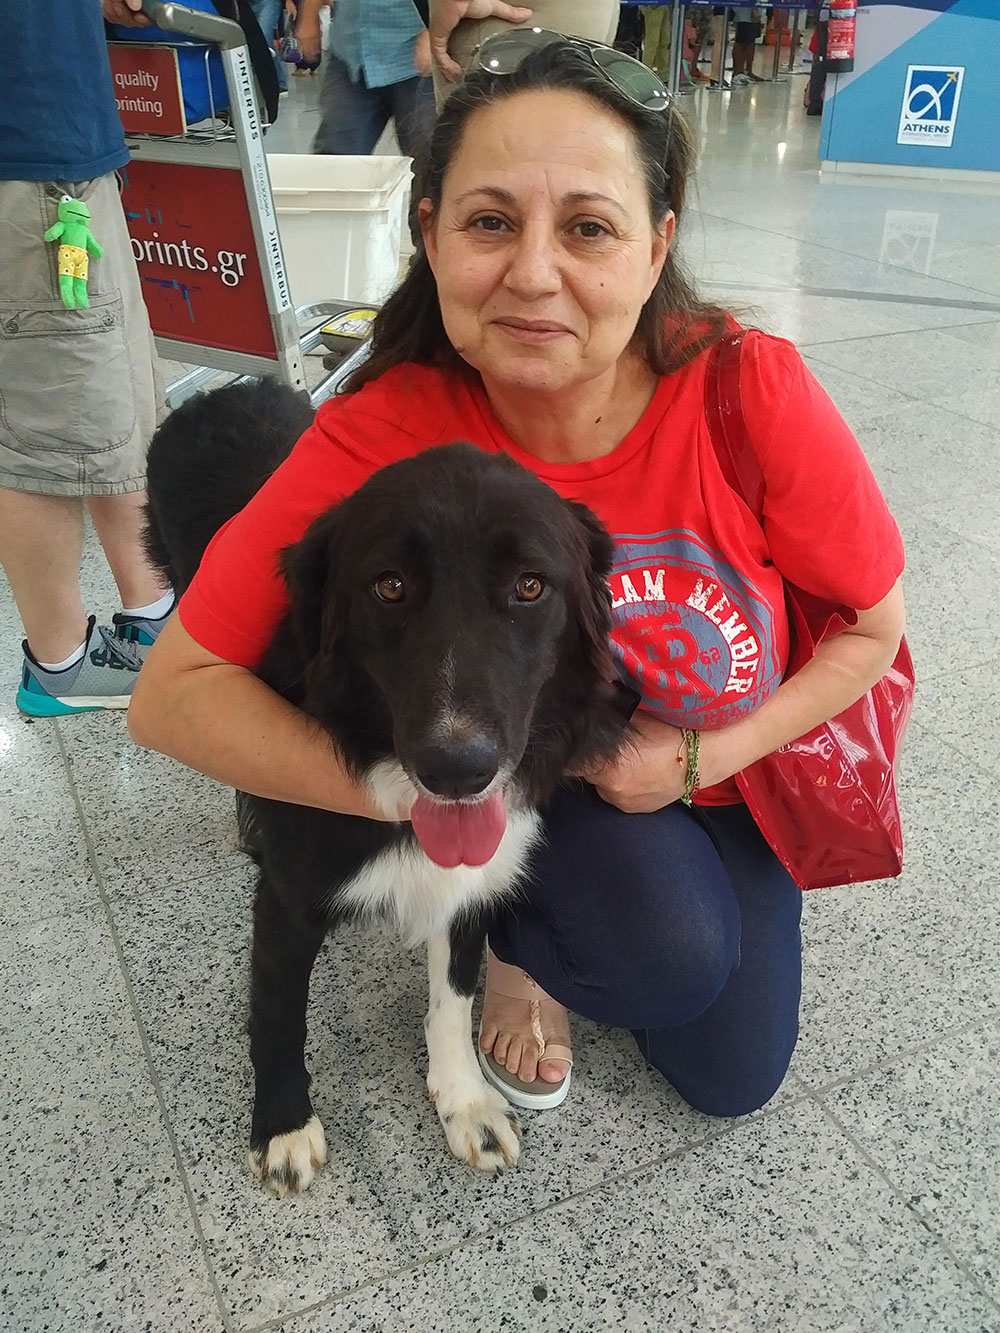 Gorgeous Anaestas has been adopted by Rachel, who is waiting eagerly for Anaestas to reach the UK. It was an emotional farewell for her foster mum, who brought her to the airport to catch the flight.